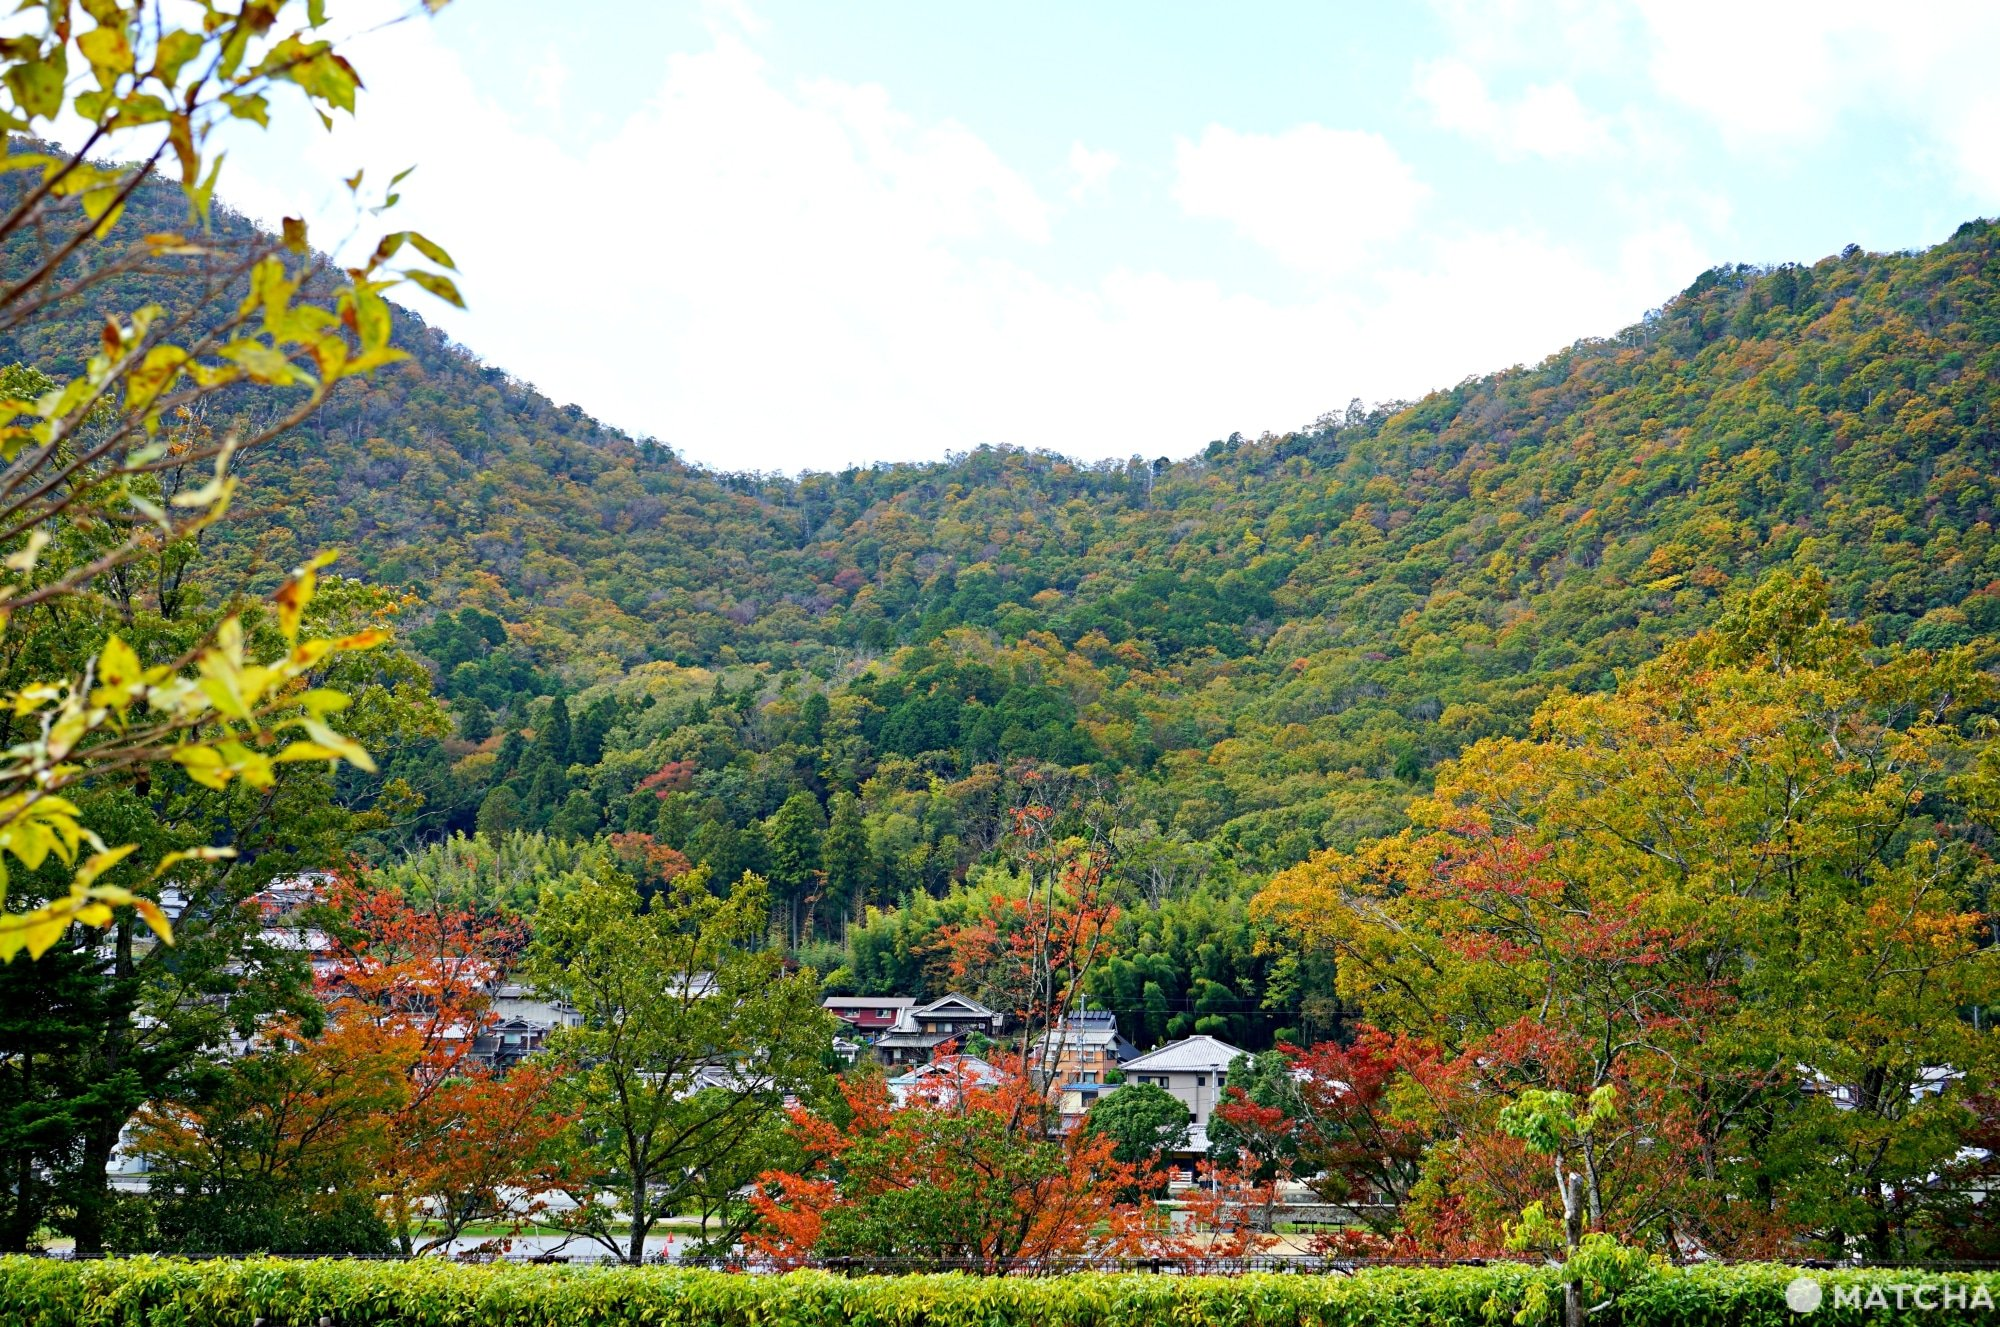 3 Days In Tamba Sasayama - Explore A Castle Town Near Kyoto